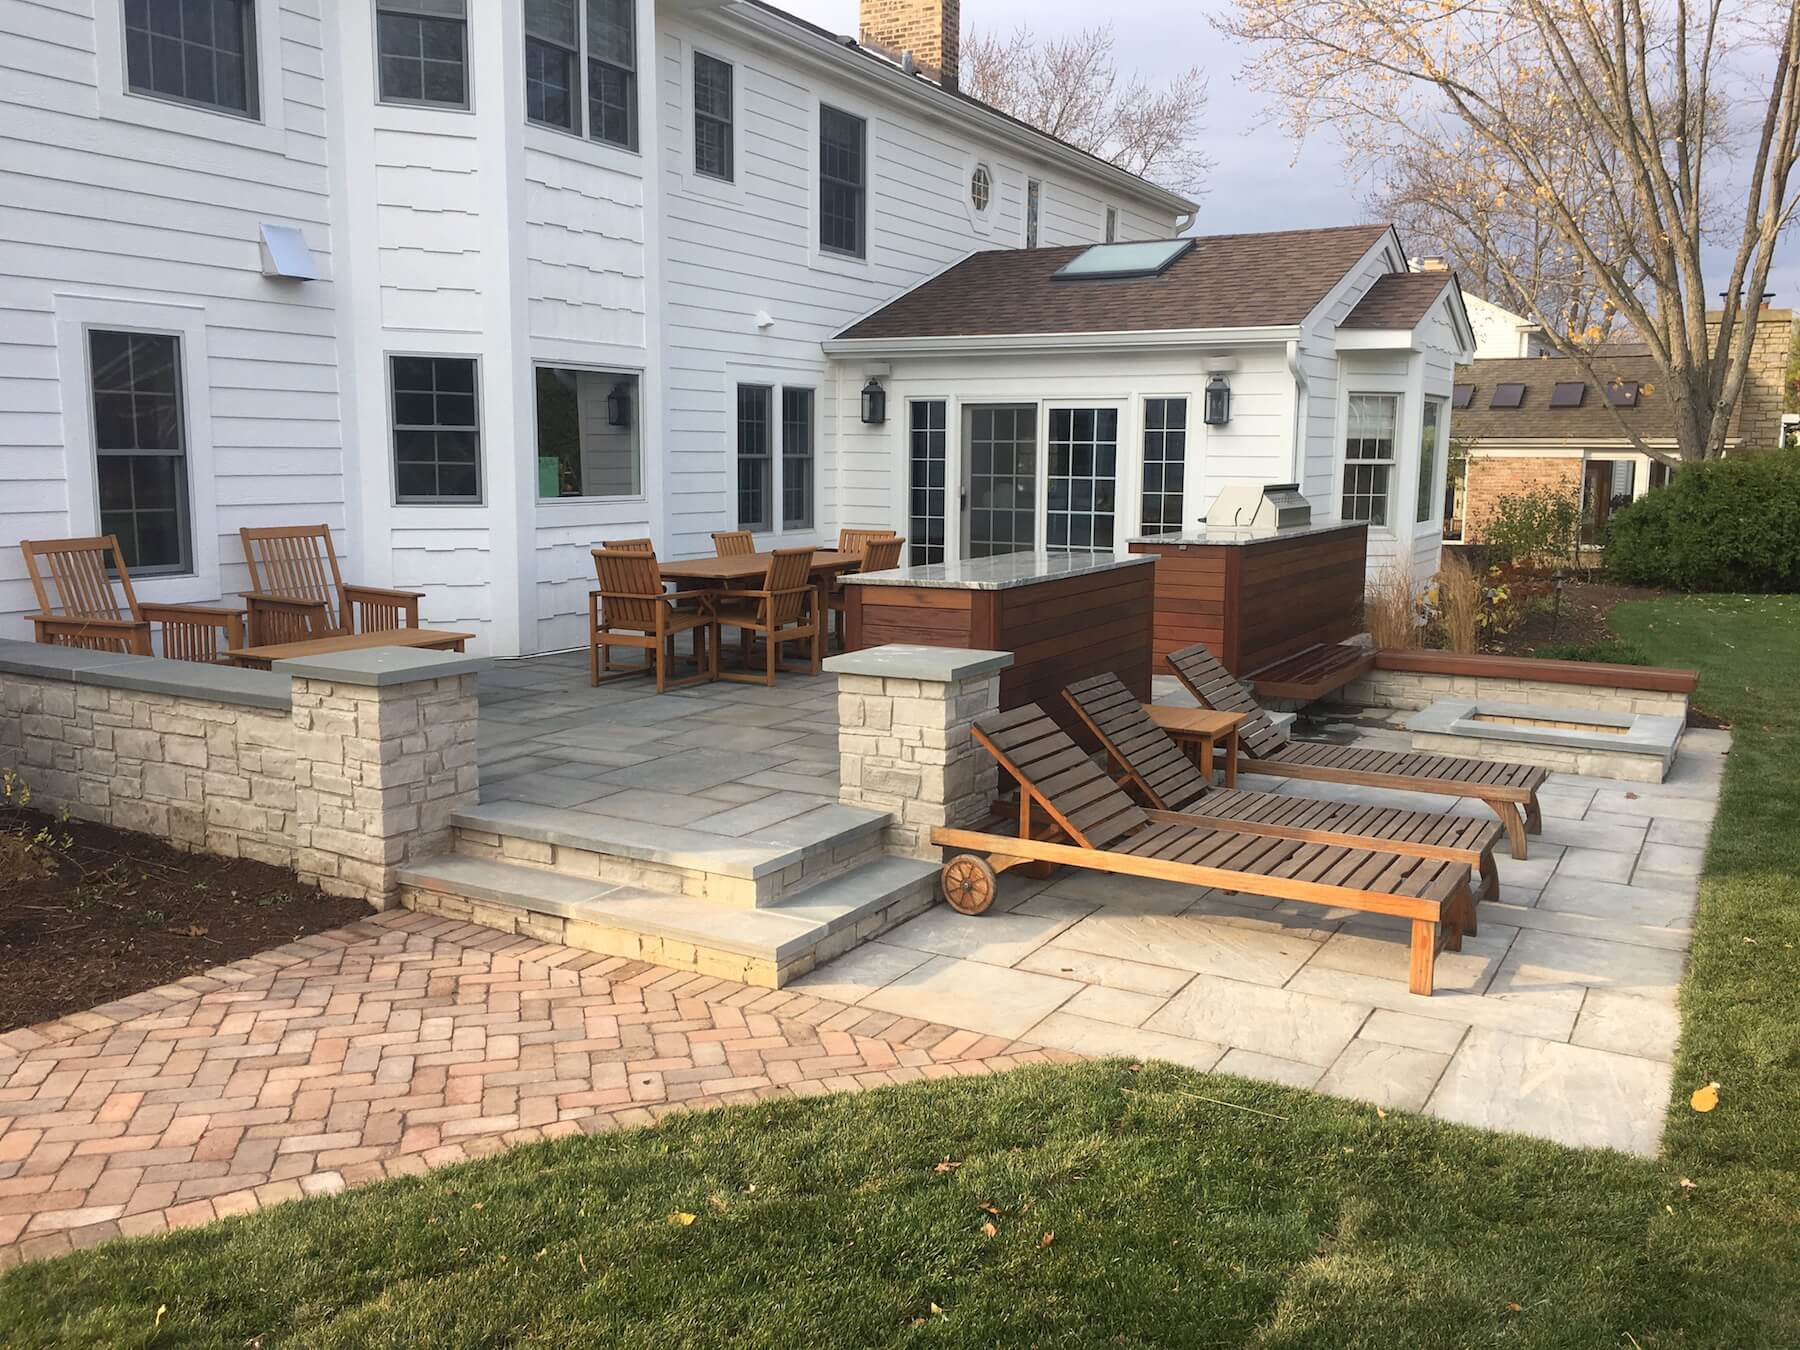 Stone Paver Patio - Denver - Roof Decks, Pergolas, and ... on Patio With Deck Ideas id=49635